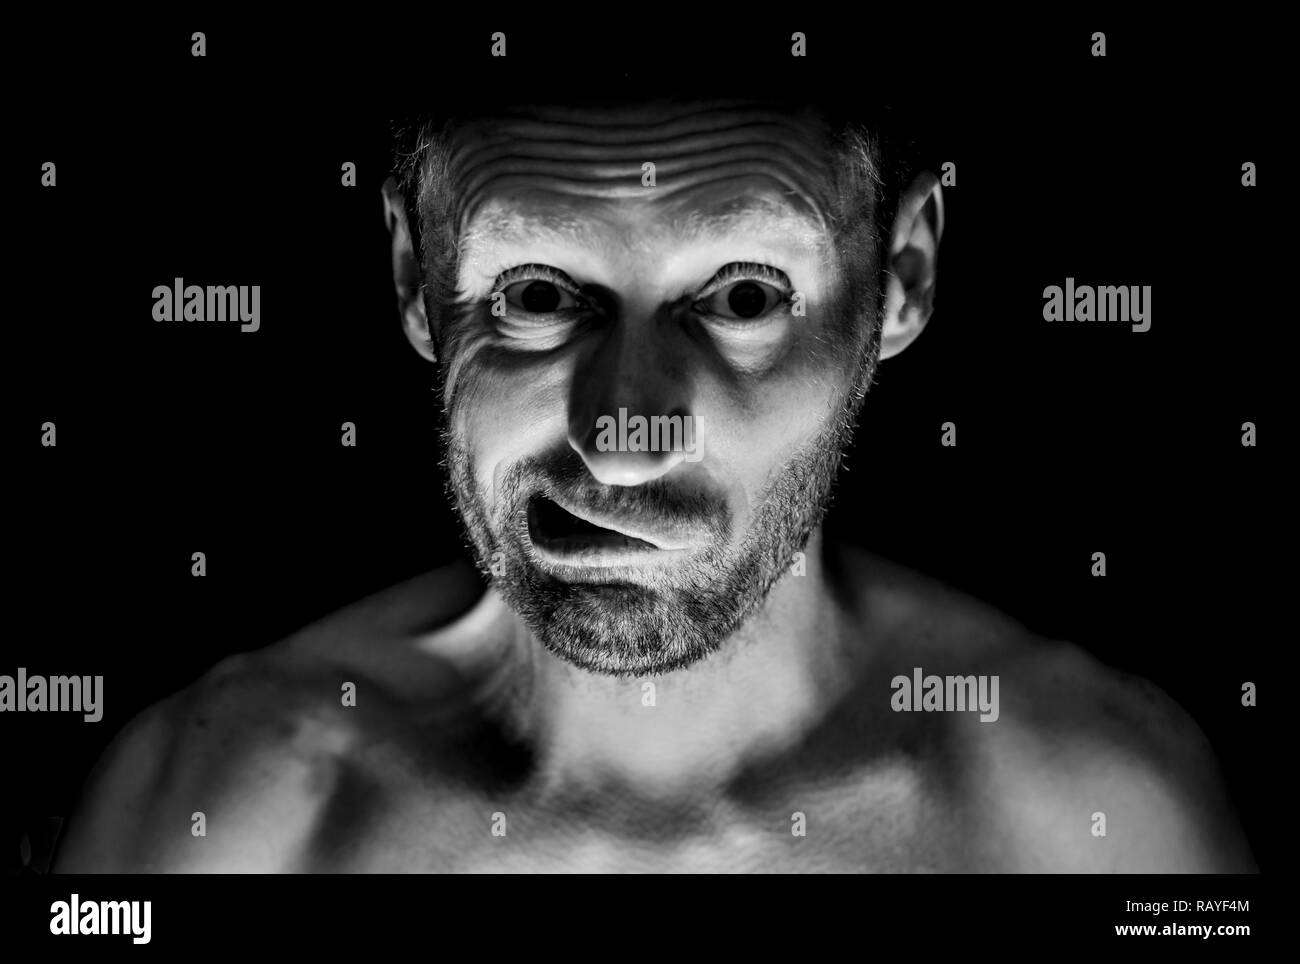 Portrait of unshaven adult caucasian man. He smiles like maniac and seems like madness. Black and white shot, low-key lighting. Isolated on black. - Stock Image